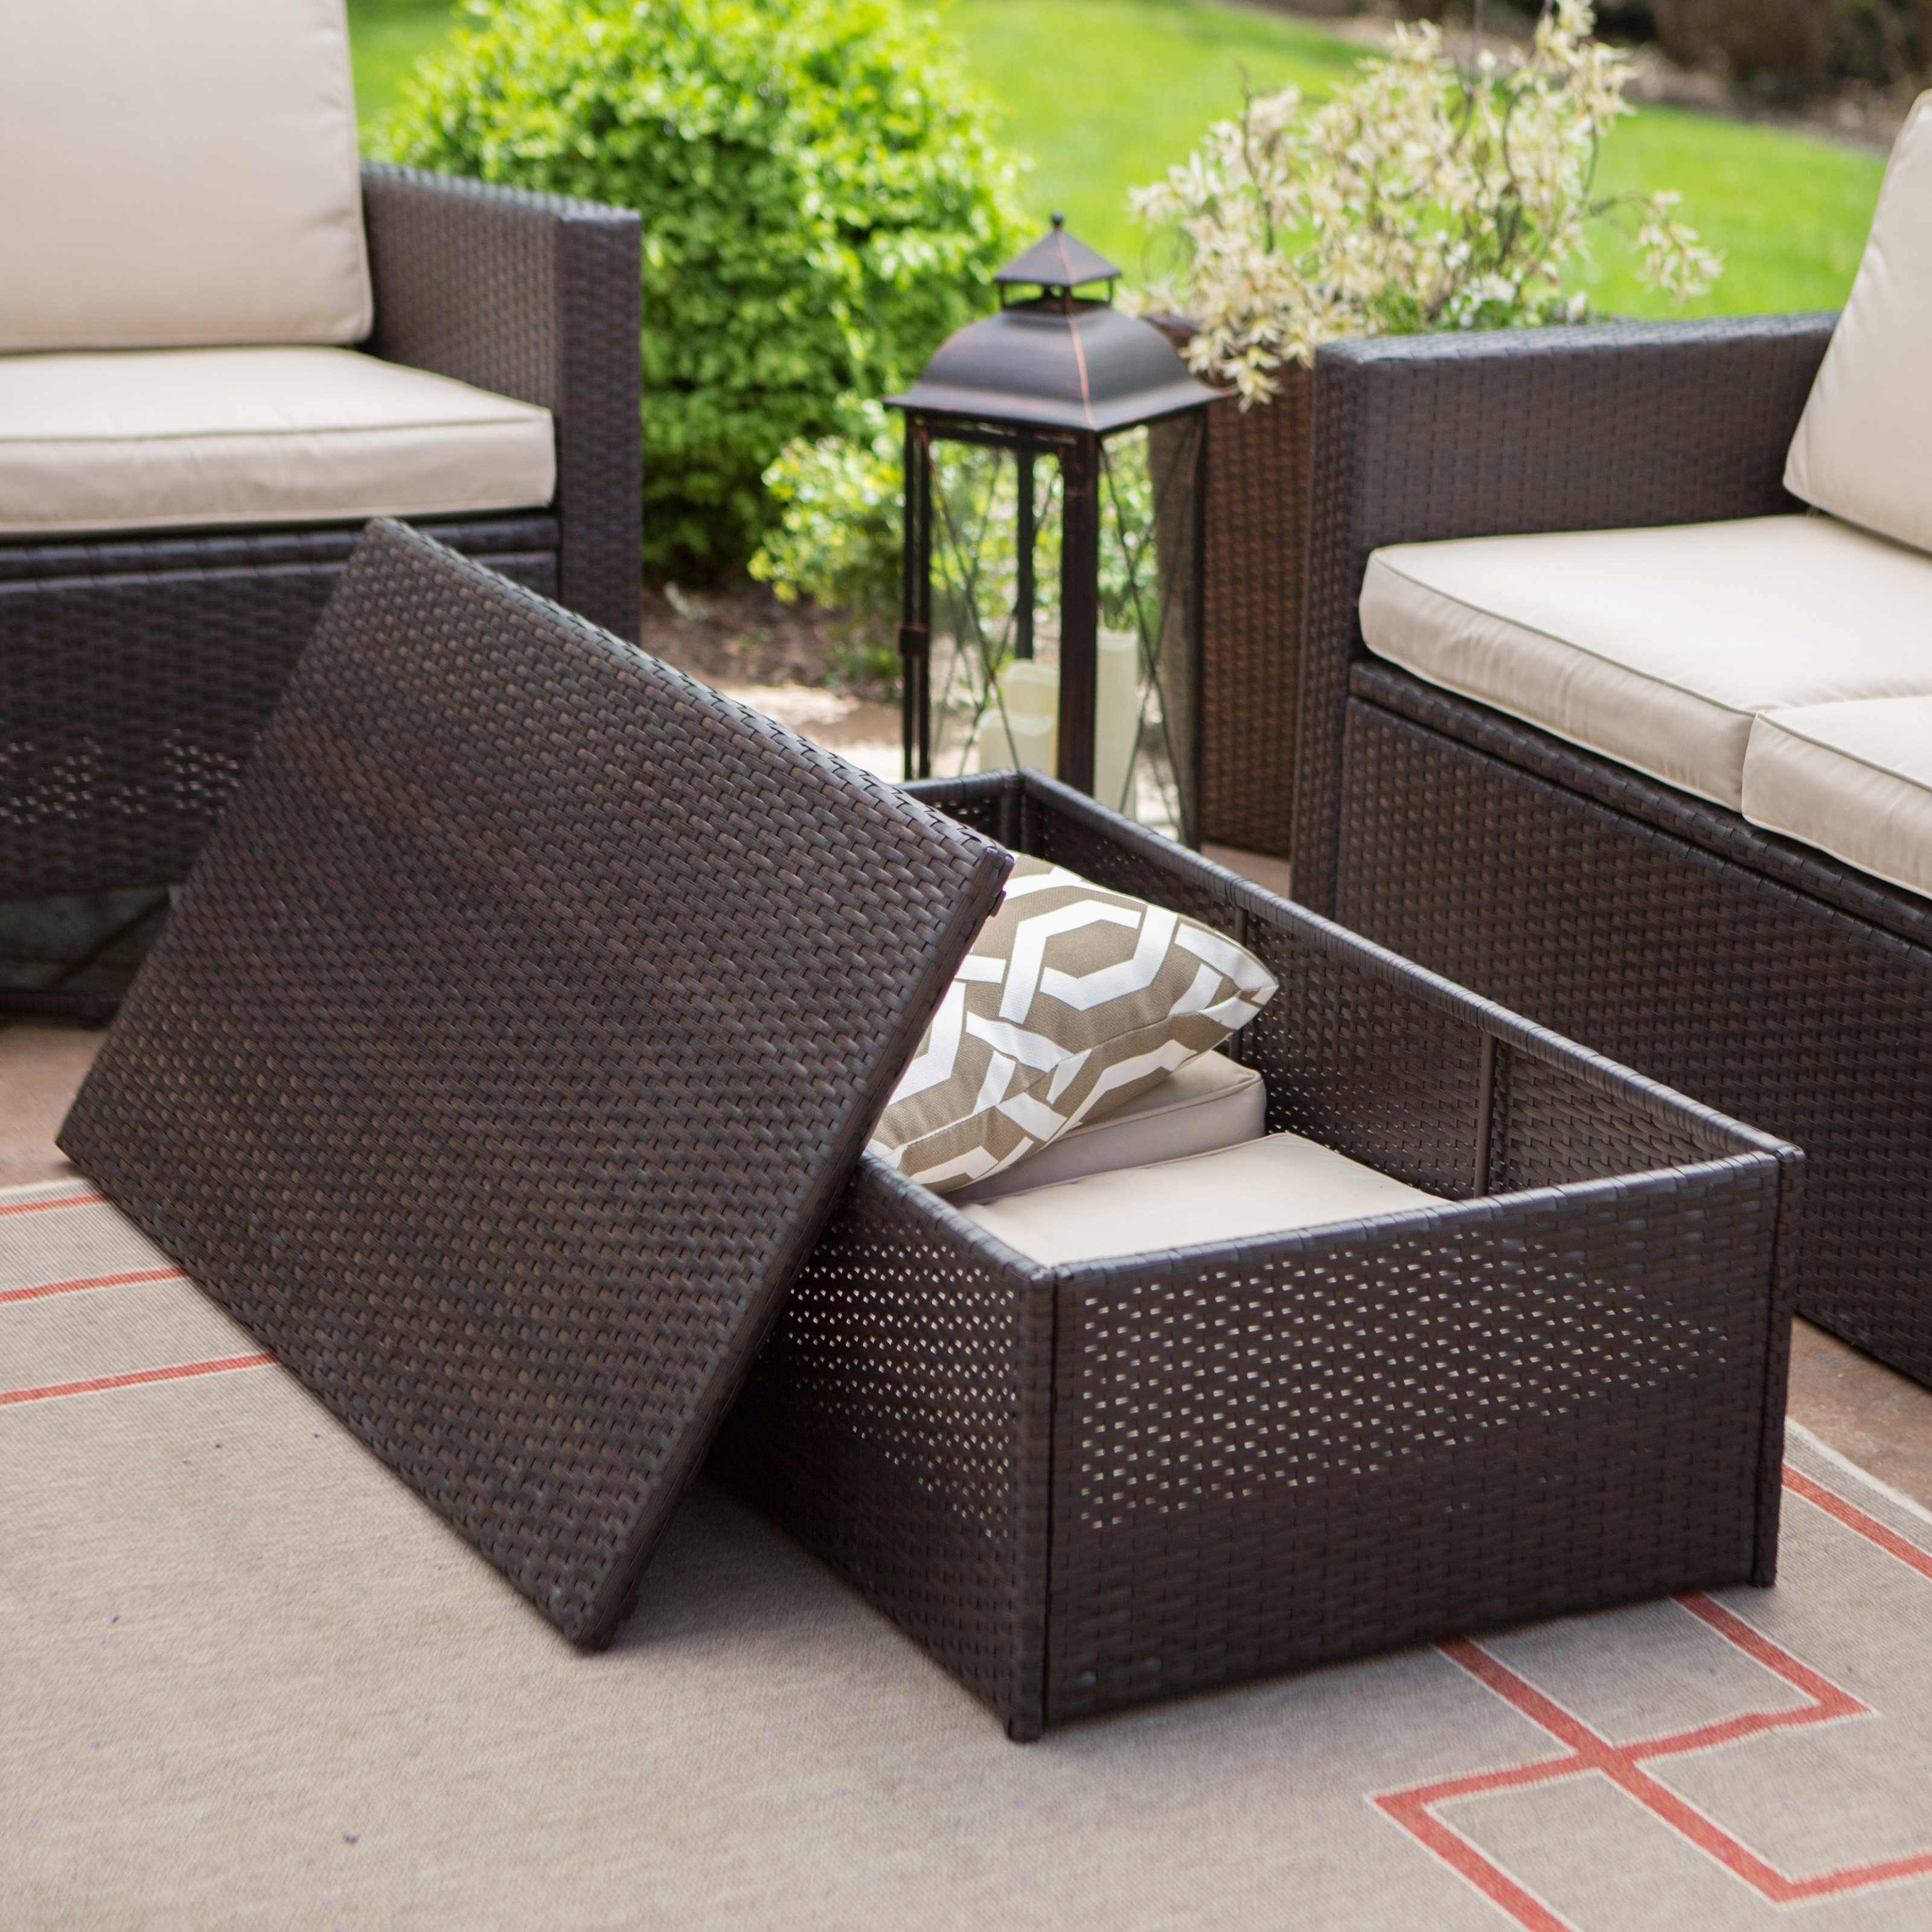 Coral Coast Berea Wicker Piece Conversation Set With Storage Patio Pertaining To Most Recently Released Patio Conversation Sets With Storage (View 3 of 20)